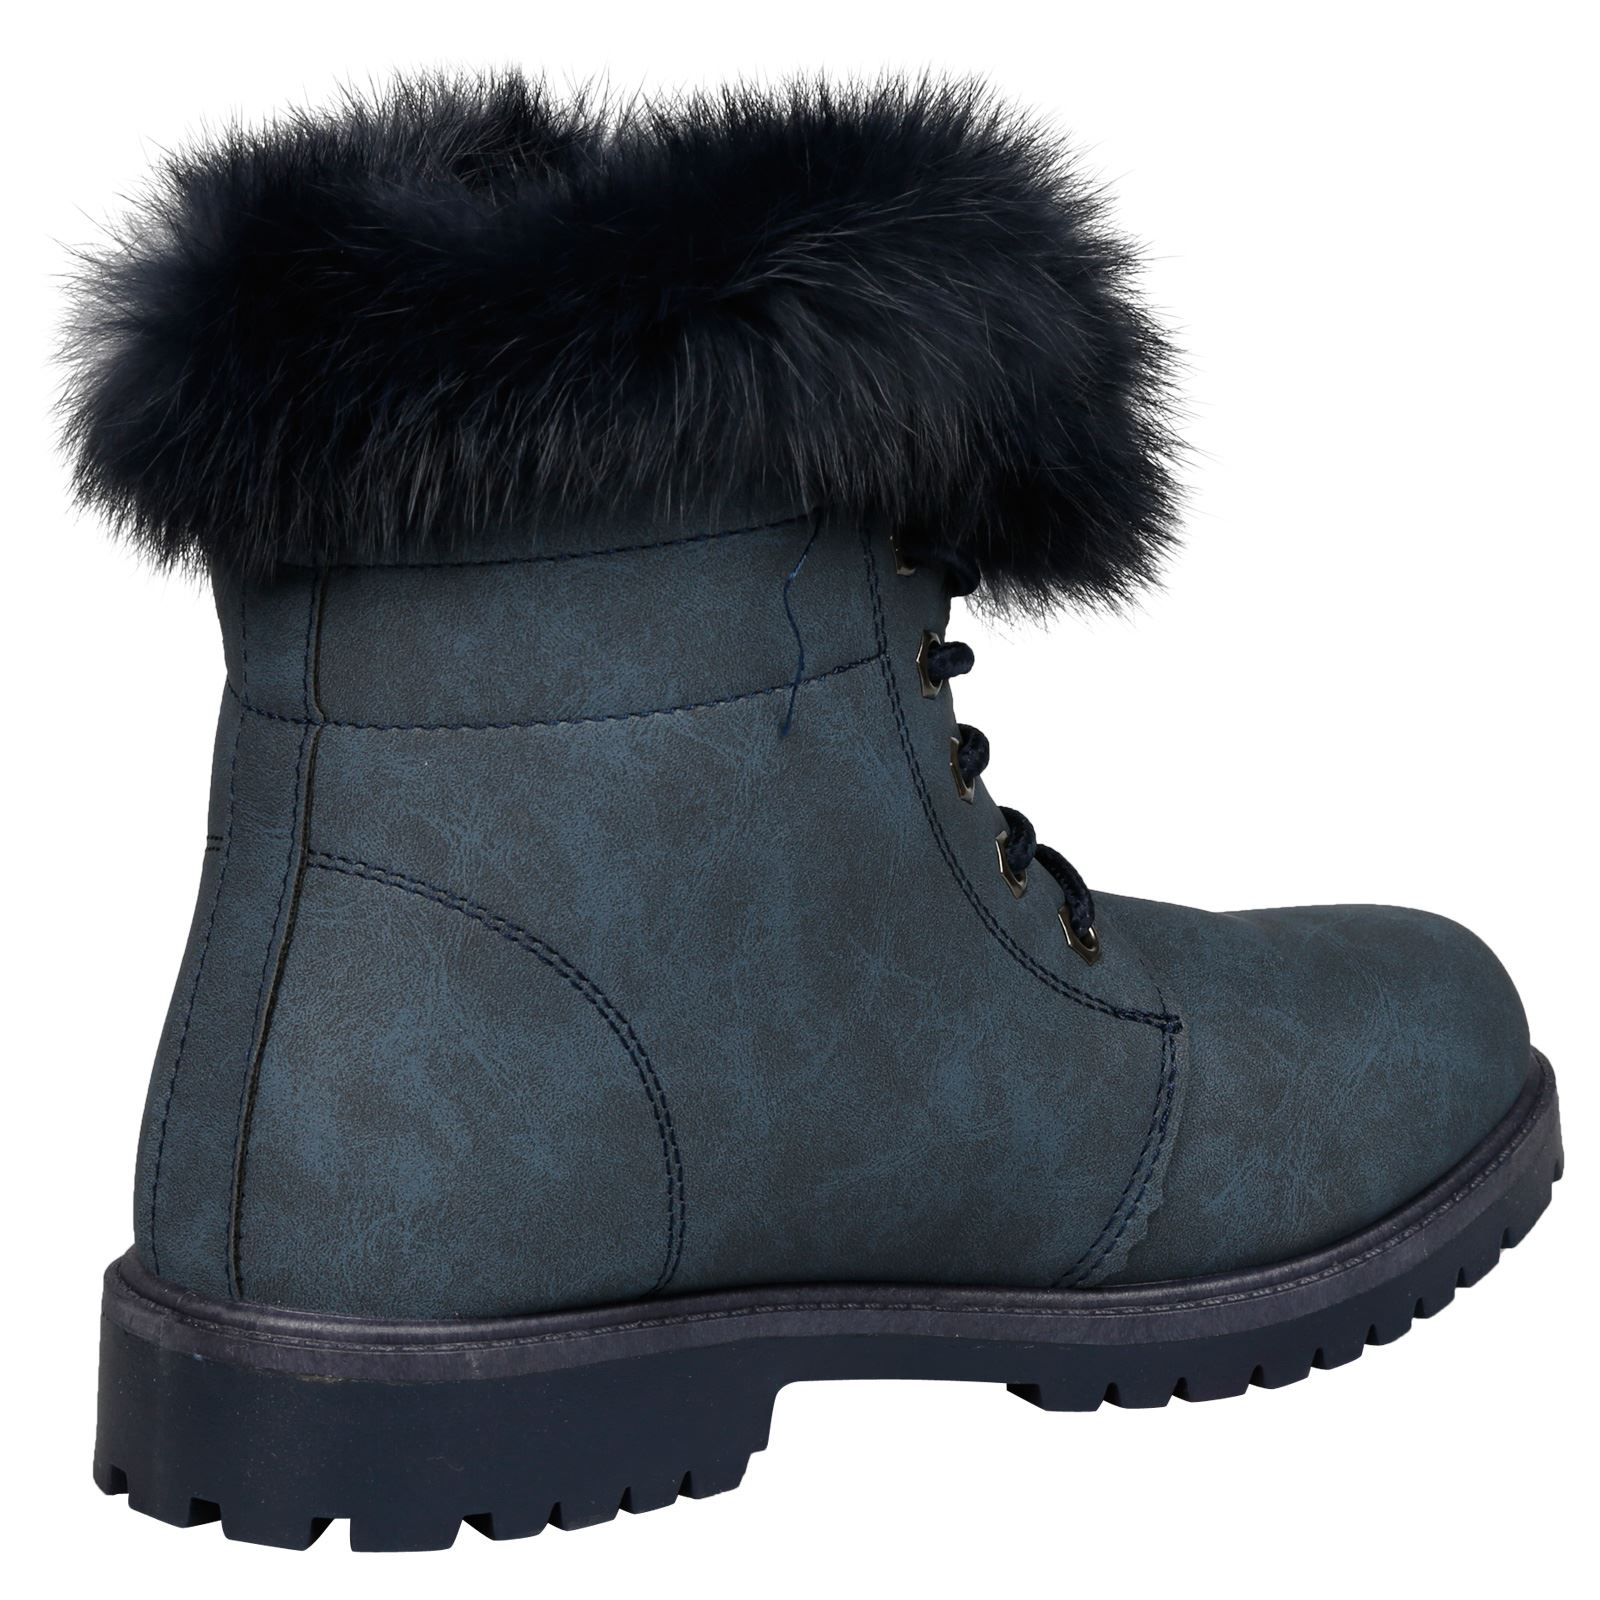 NEW-WOMEN-SHOES-LADIES-FUR-LINED-LOW-HEEL-LACE-UP-ANKLE-BOOTS-CASUAL-STYLE-SIZE thumbnail 26